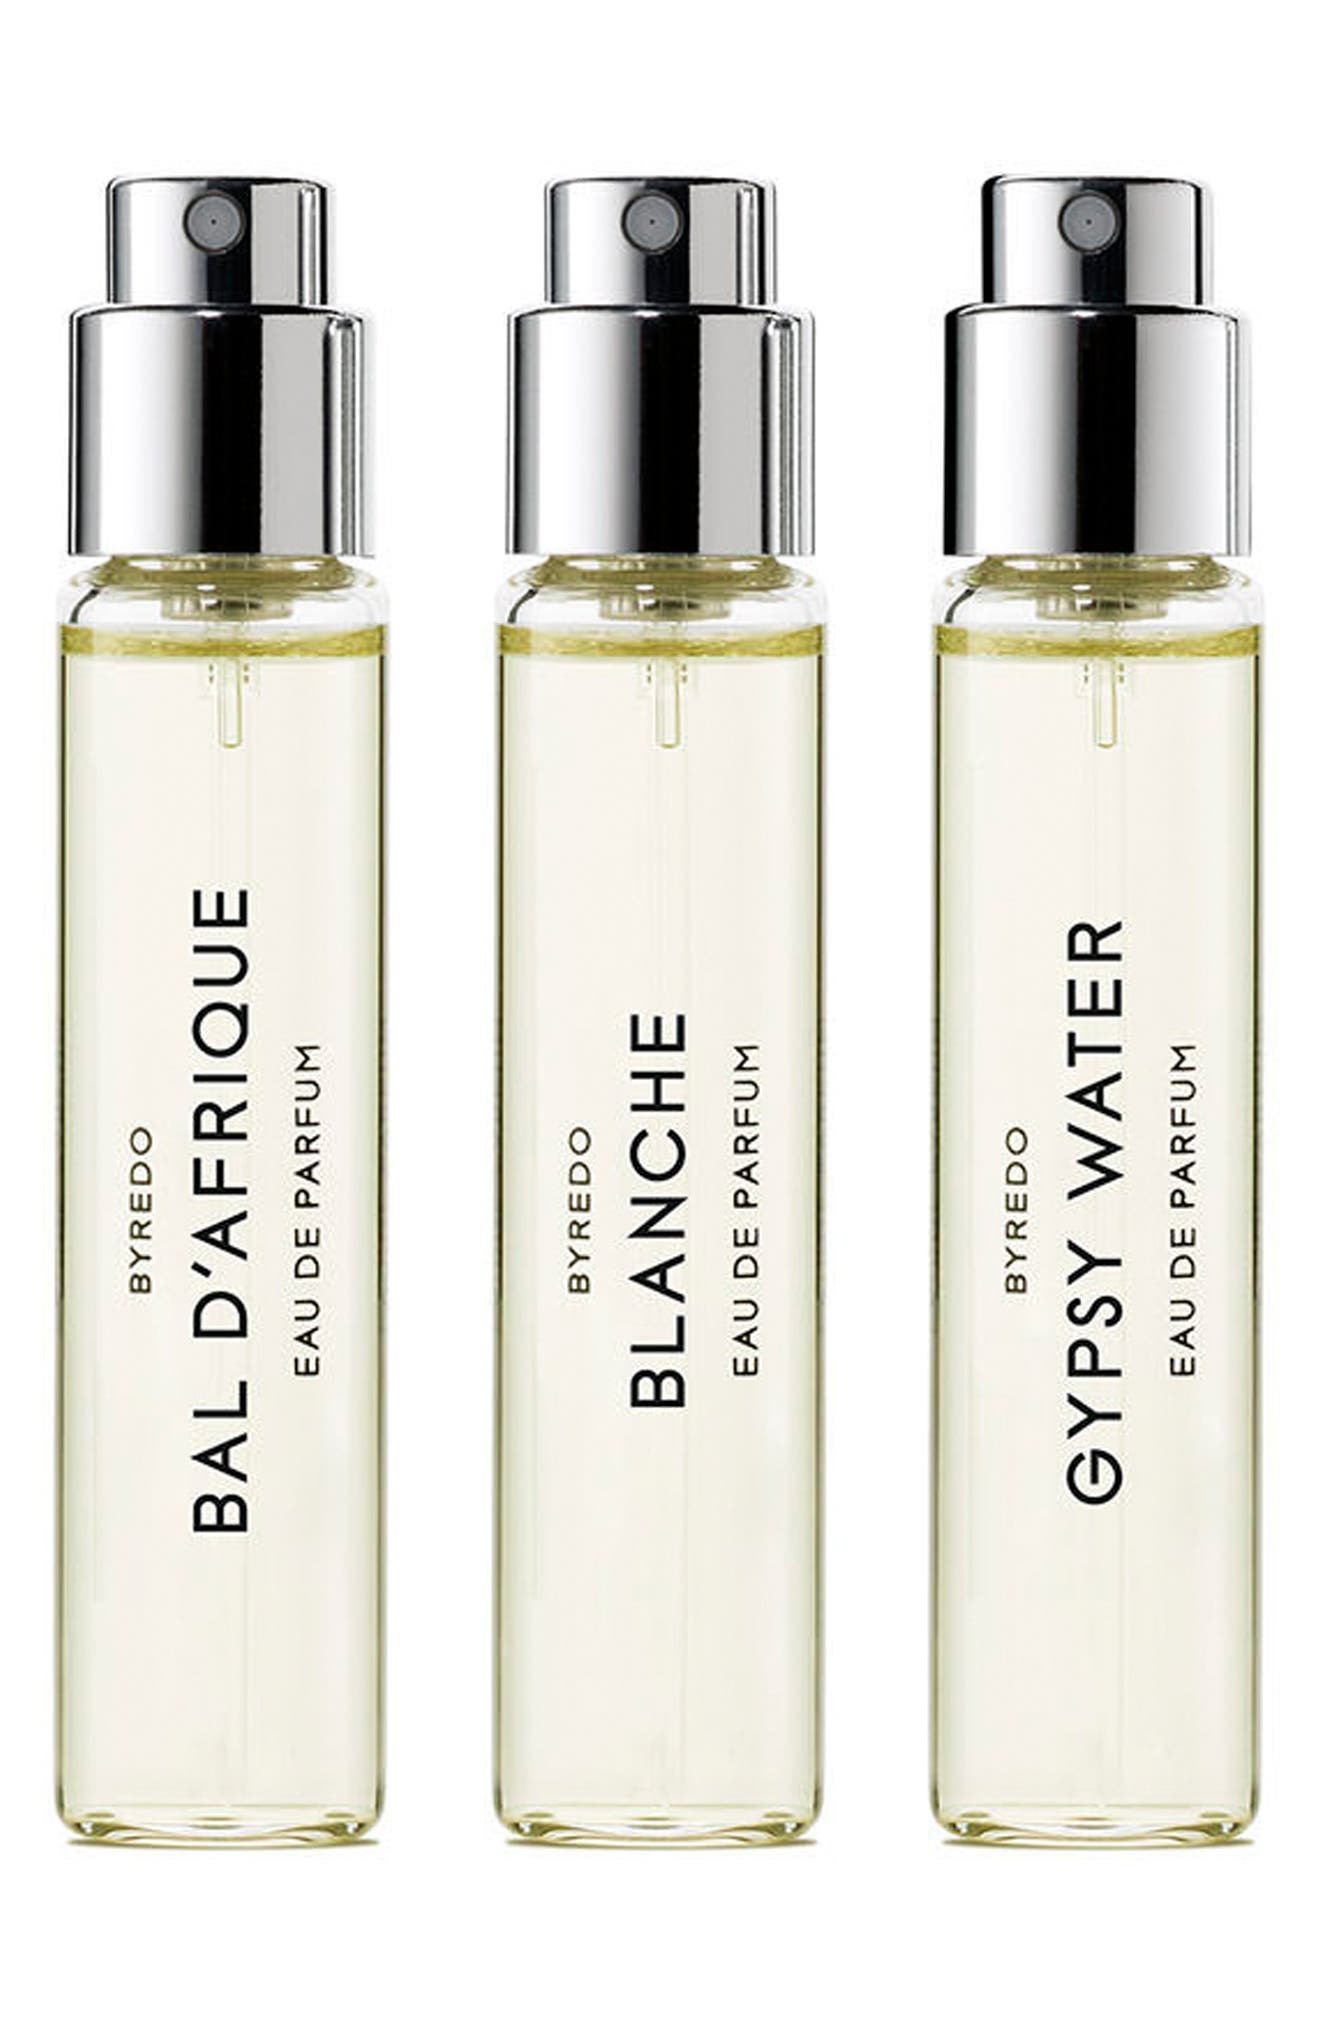 Byredo La Selection Nomade Trio